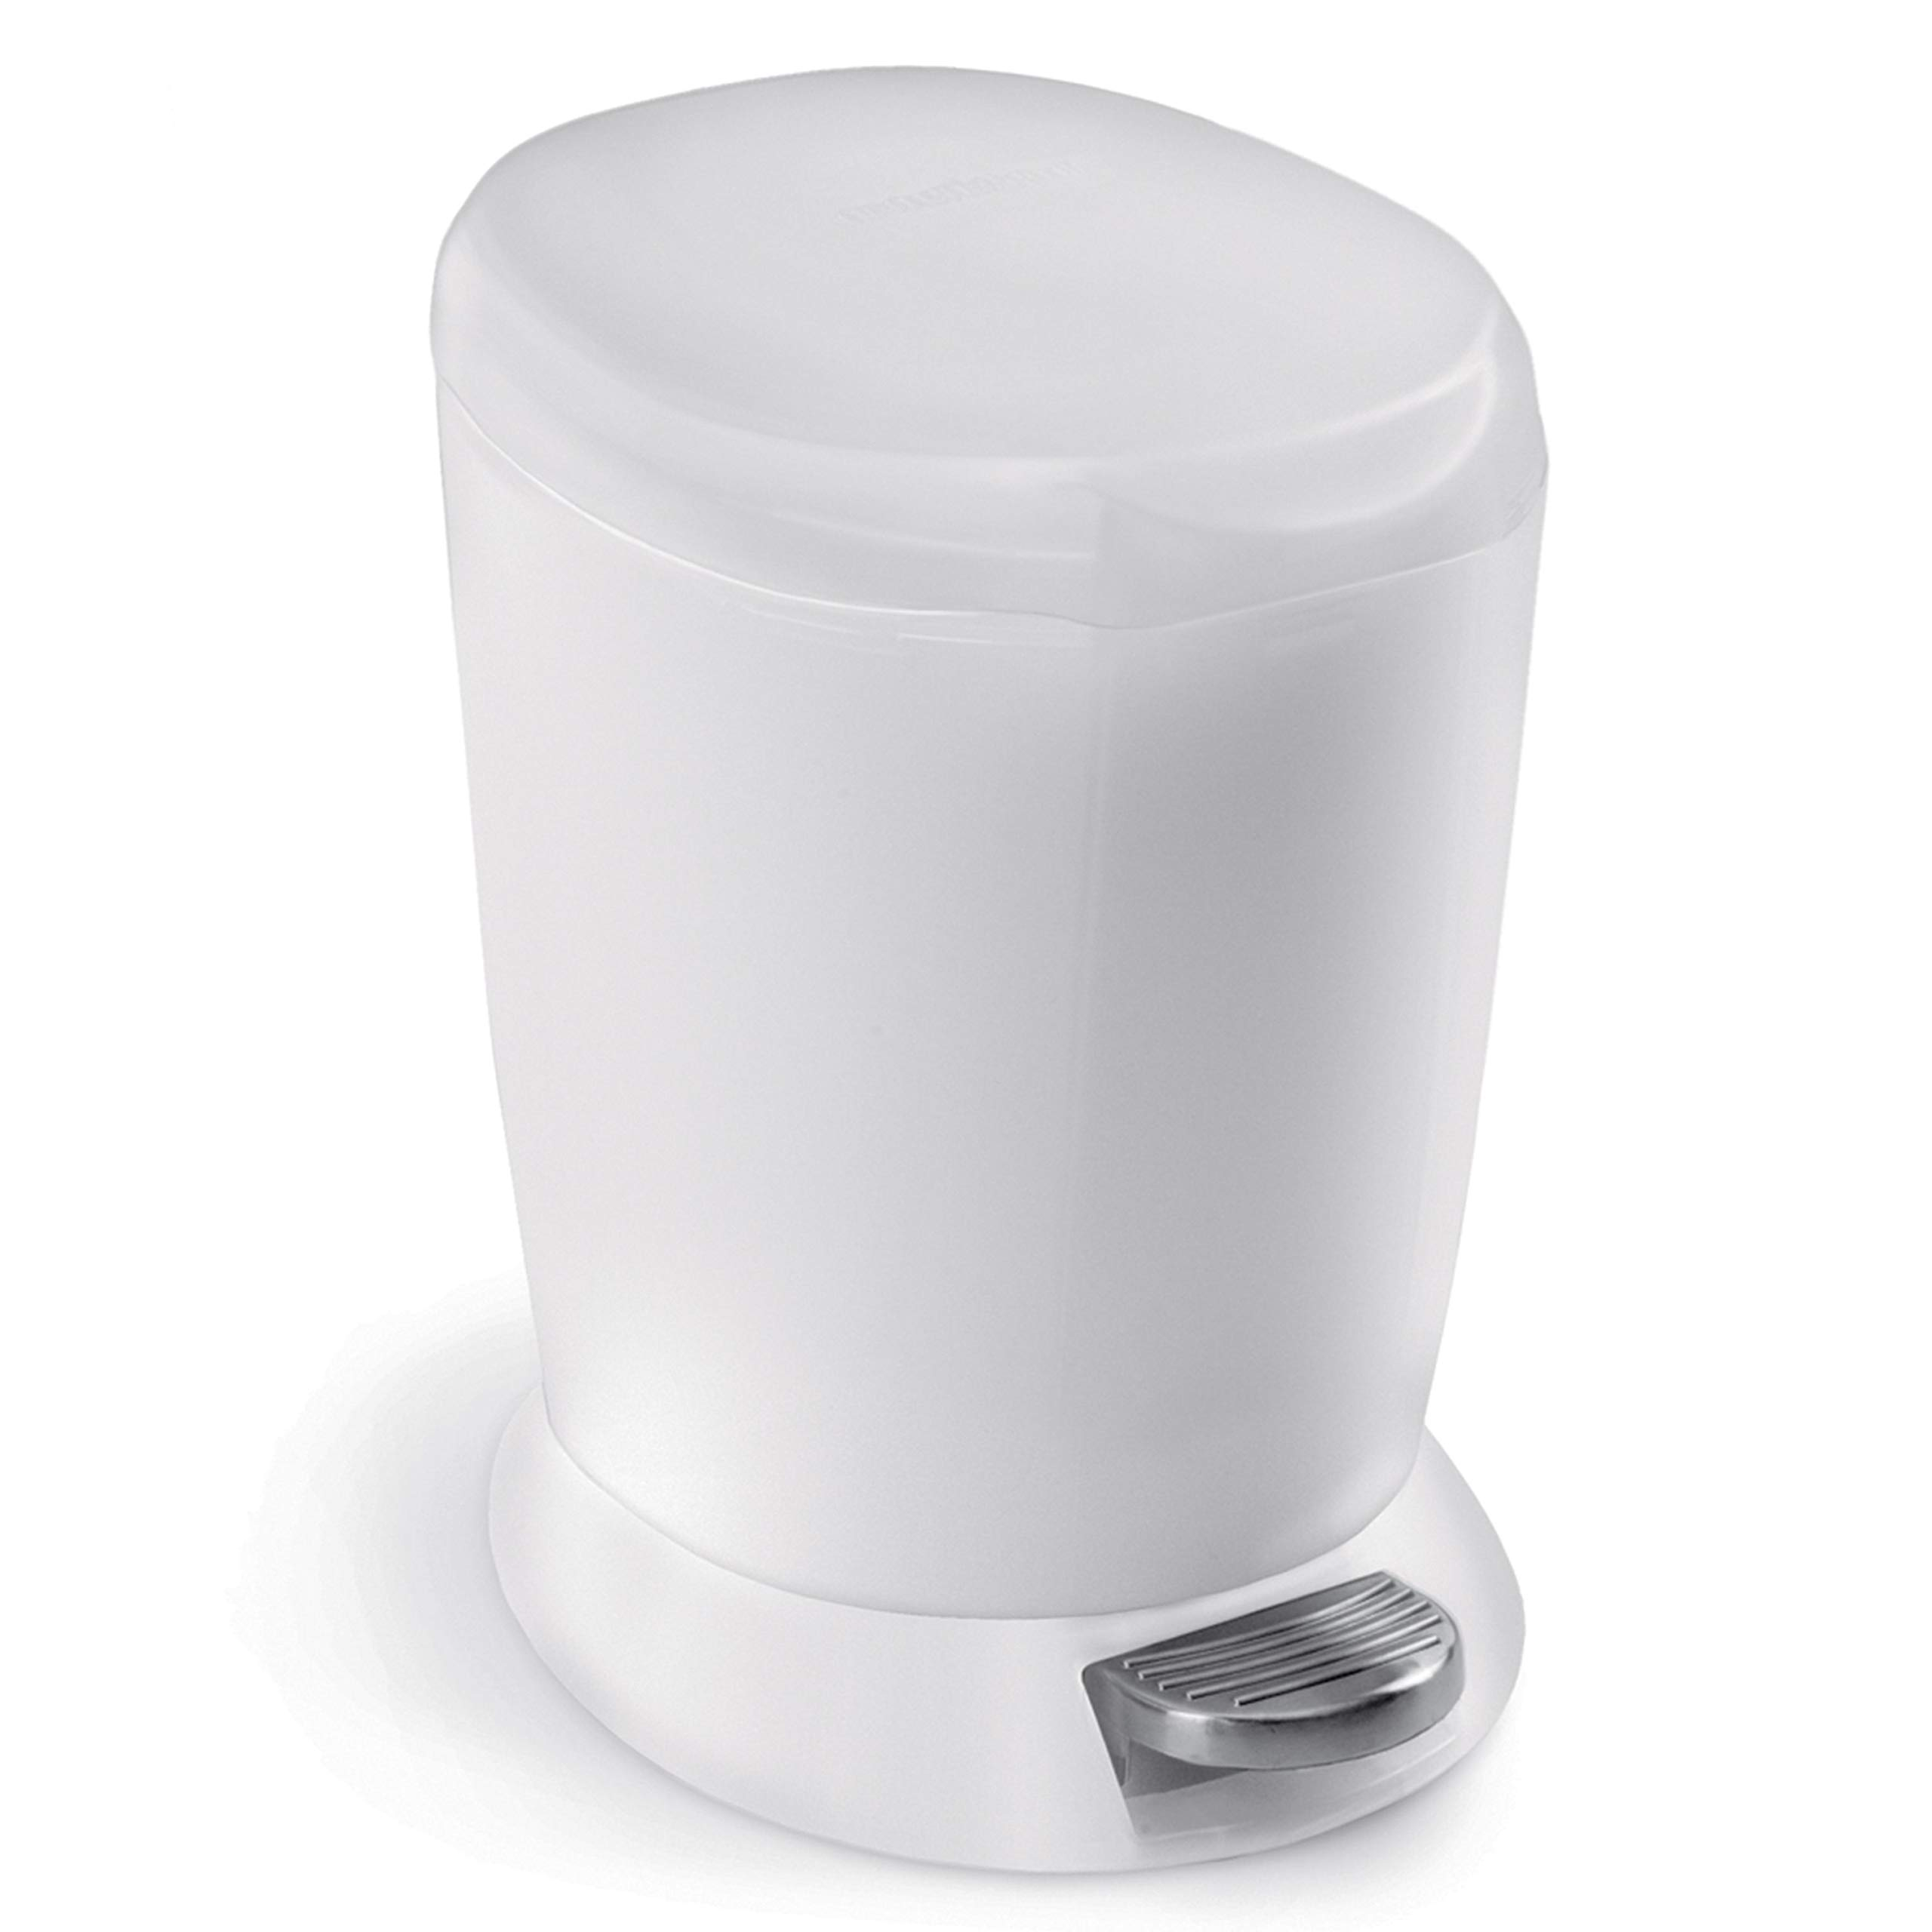 simplehuman 6 Liter / 1.6 Gallon Compact Plastic Round Bathroom Step Trash Can, White Plastic by simplehuman